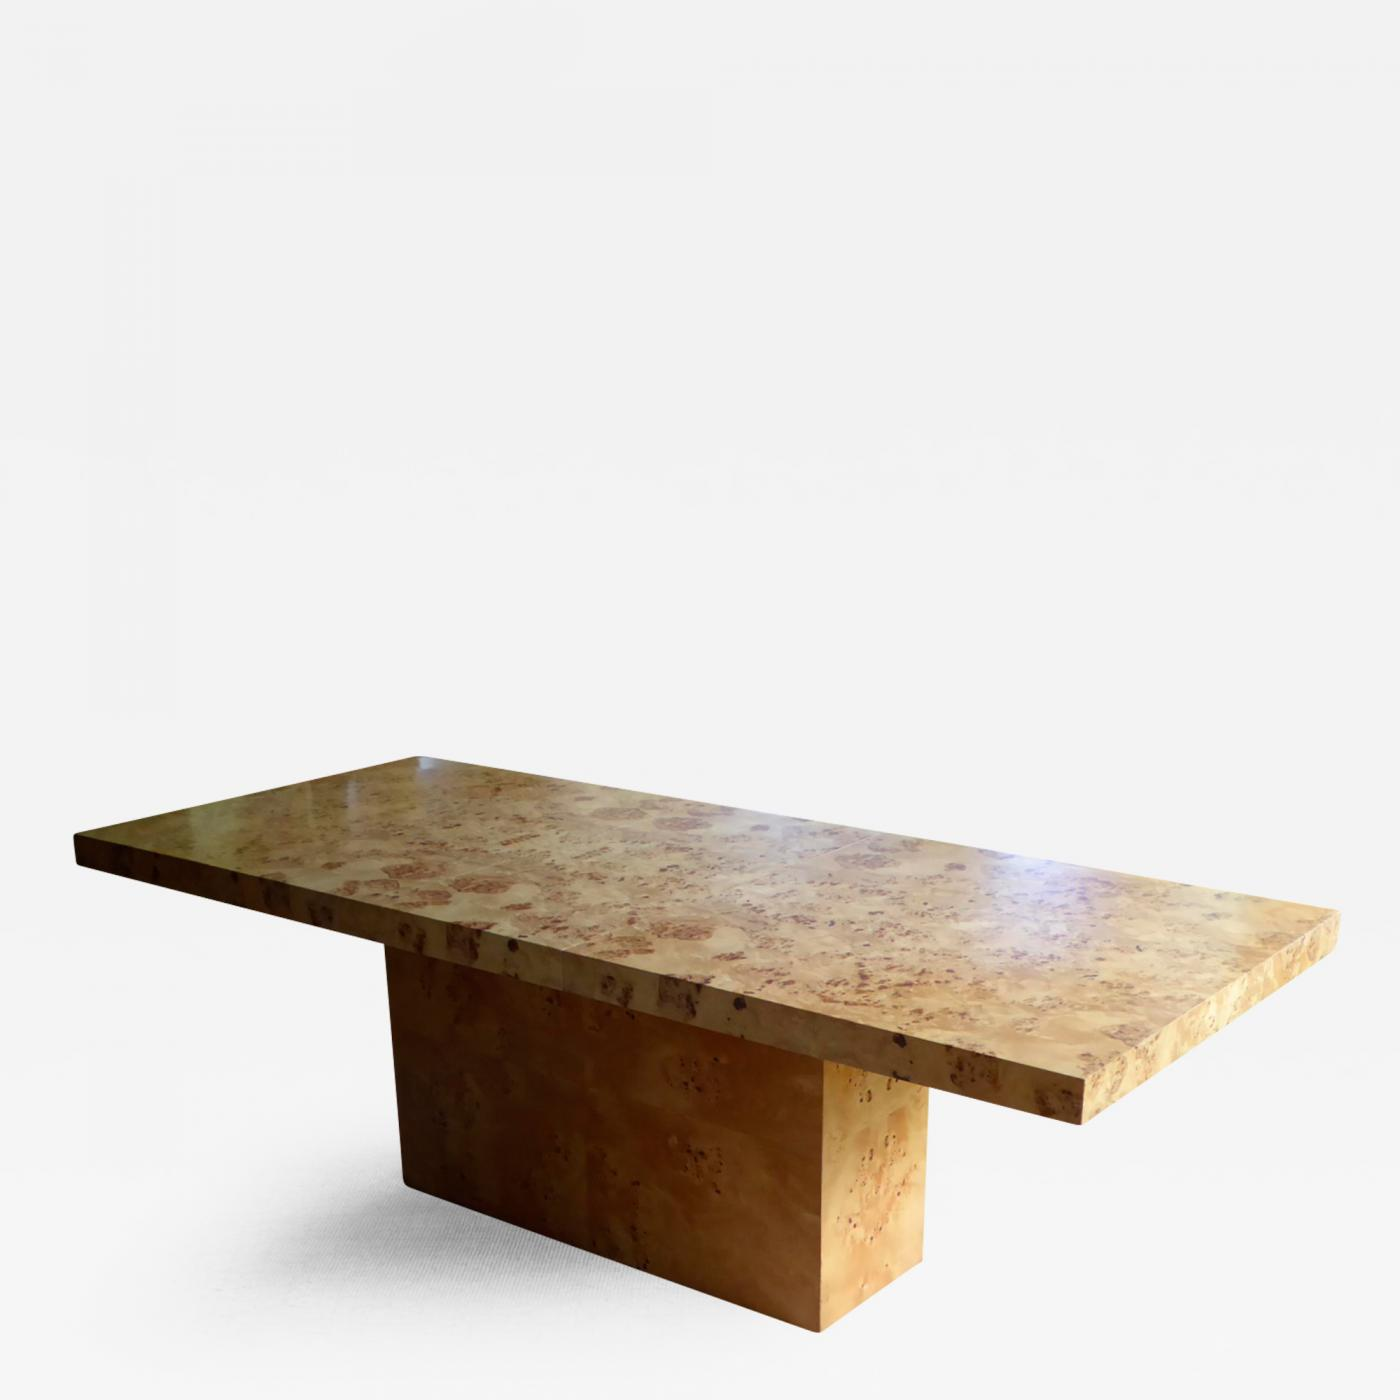 Milo Baughman 1970s Burl Olive Wood Dining Table by Milo